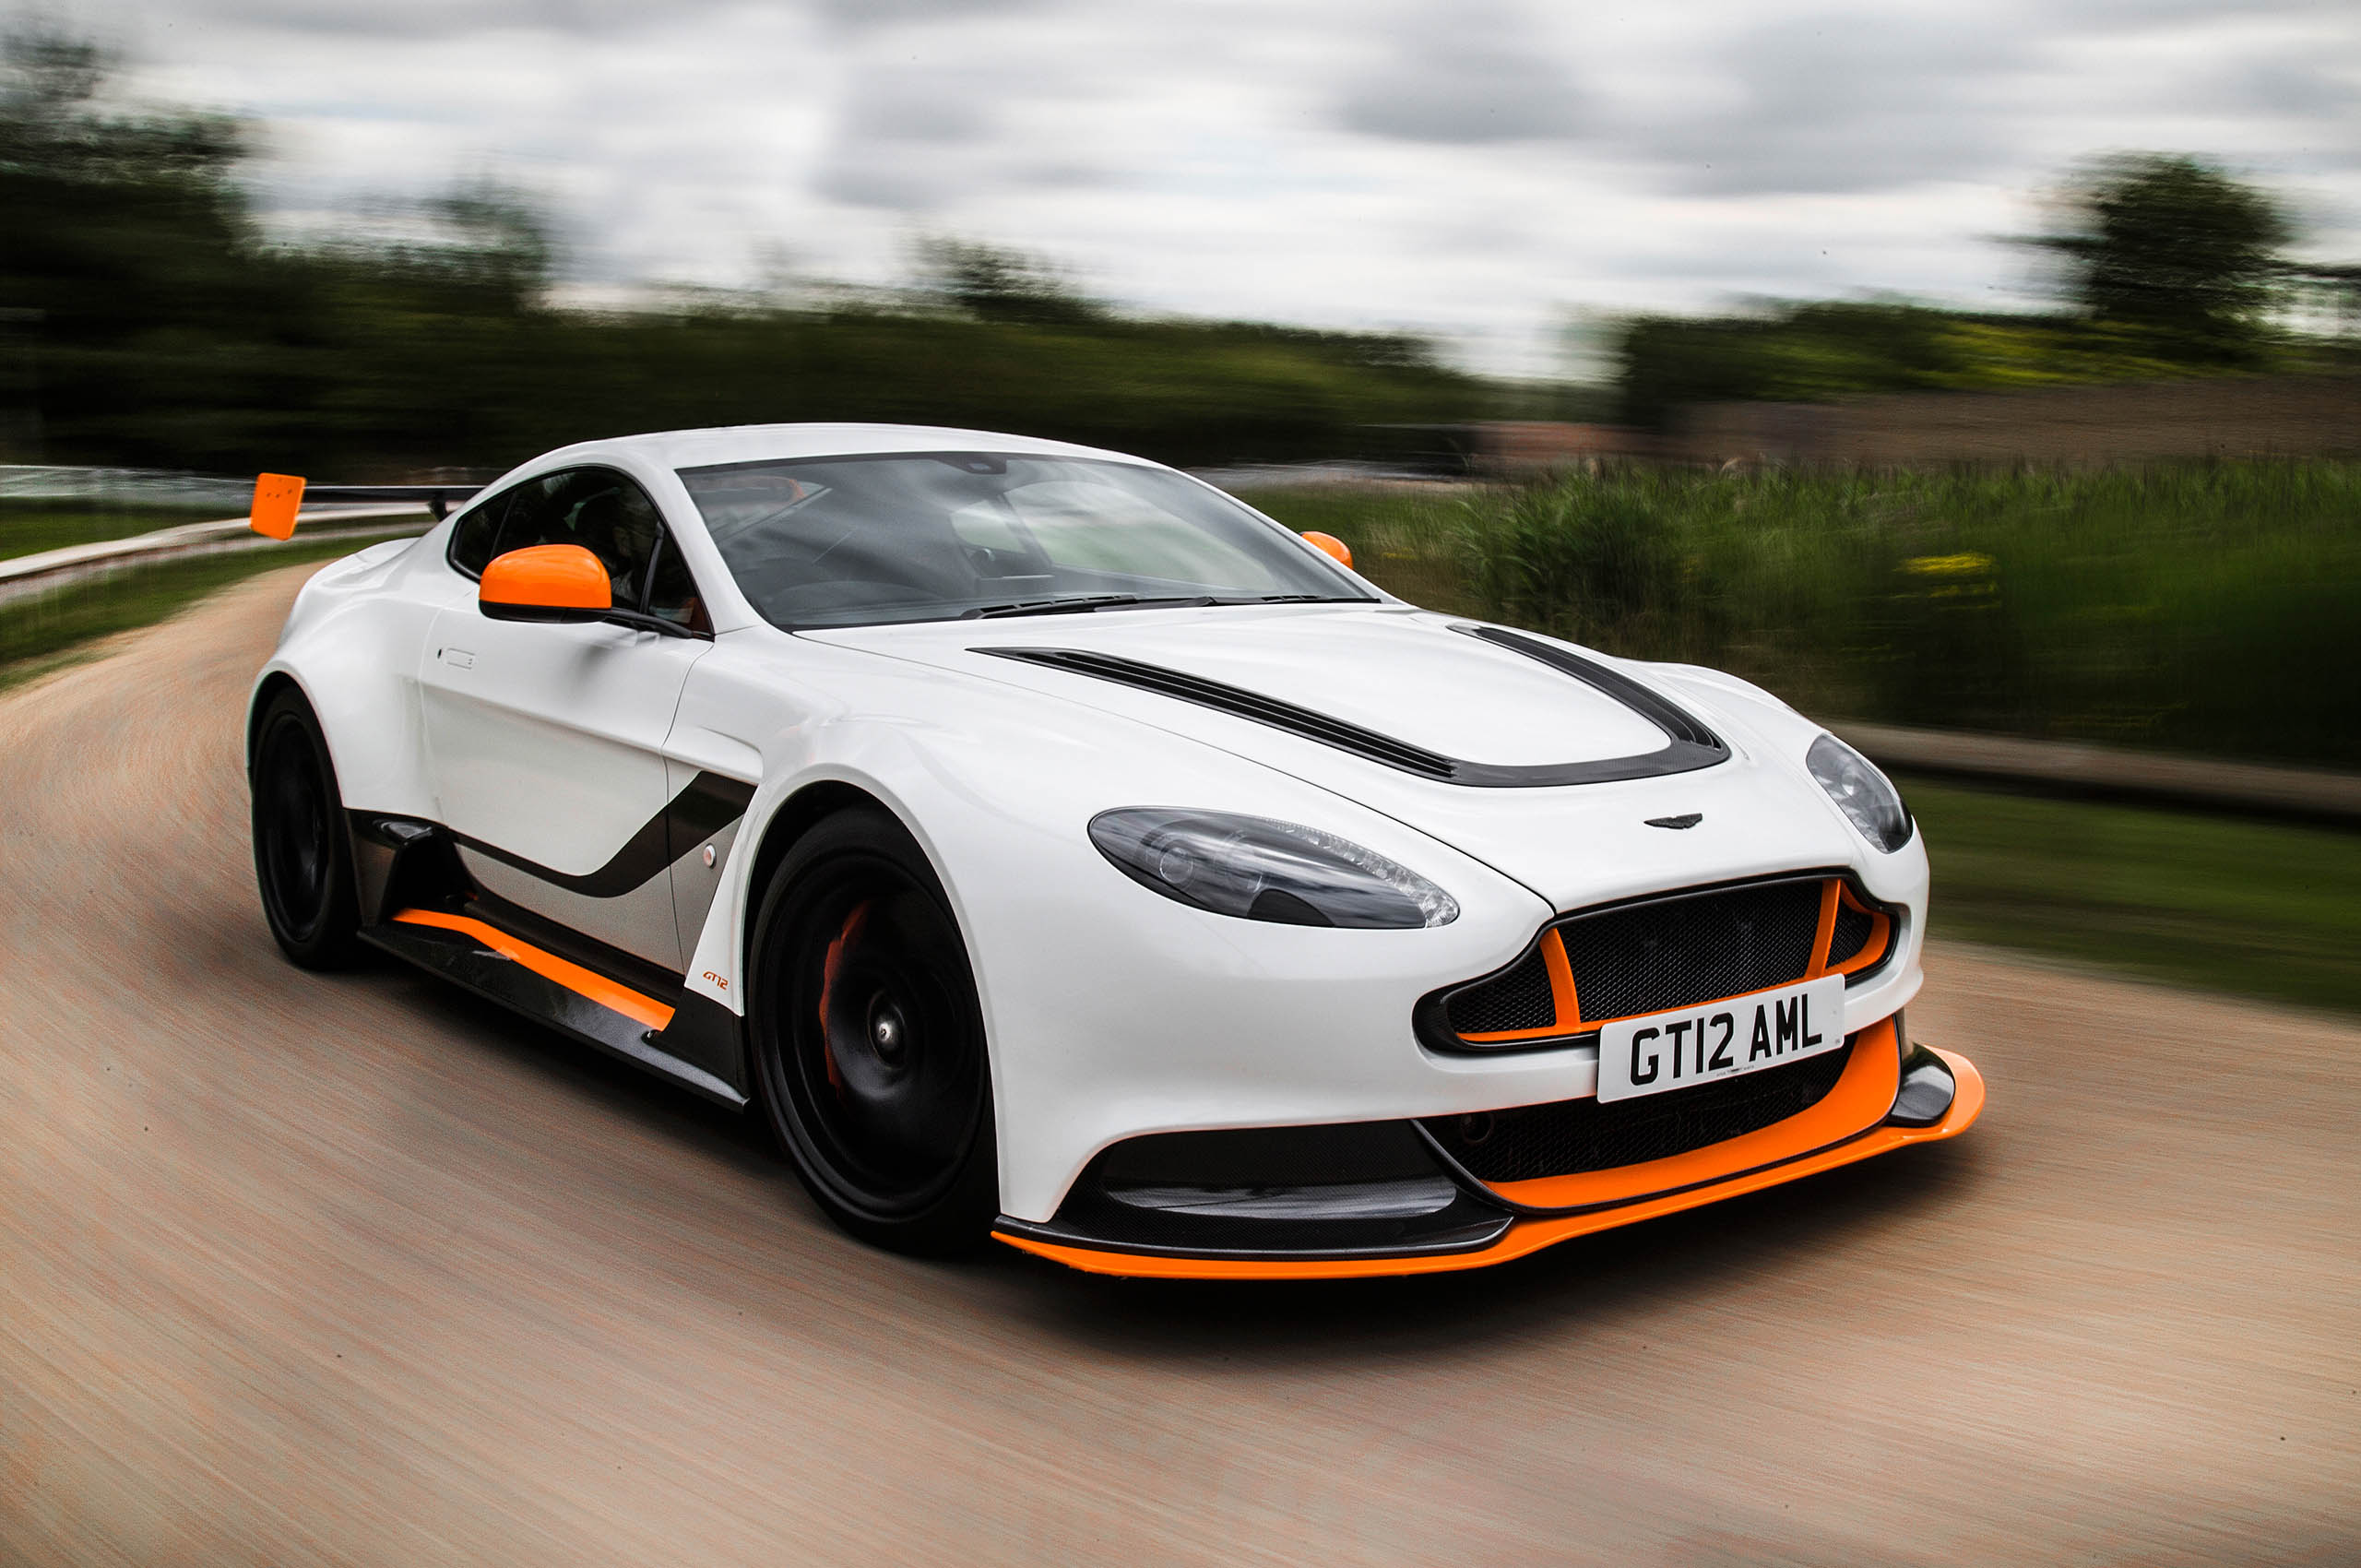 HQ Aston Martin Wallpapers | File 407.39Kb